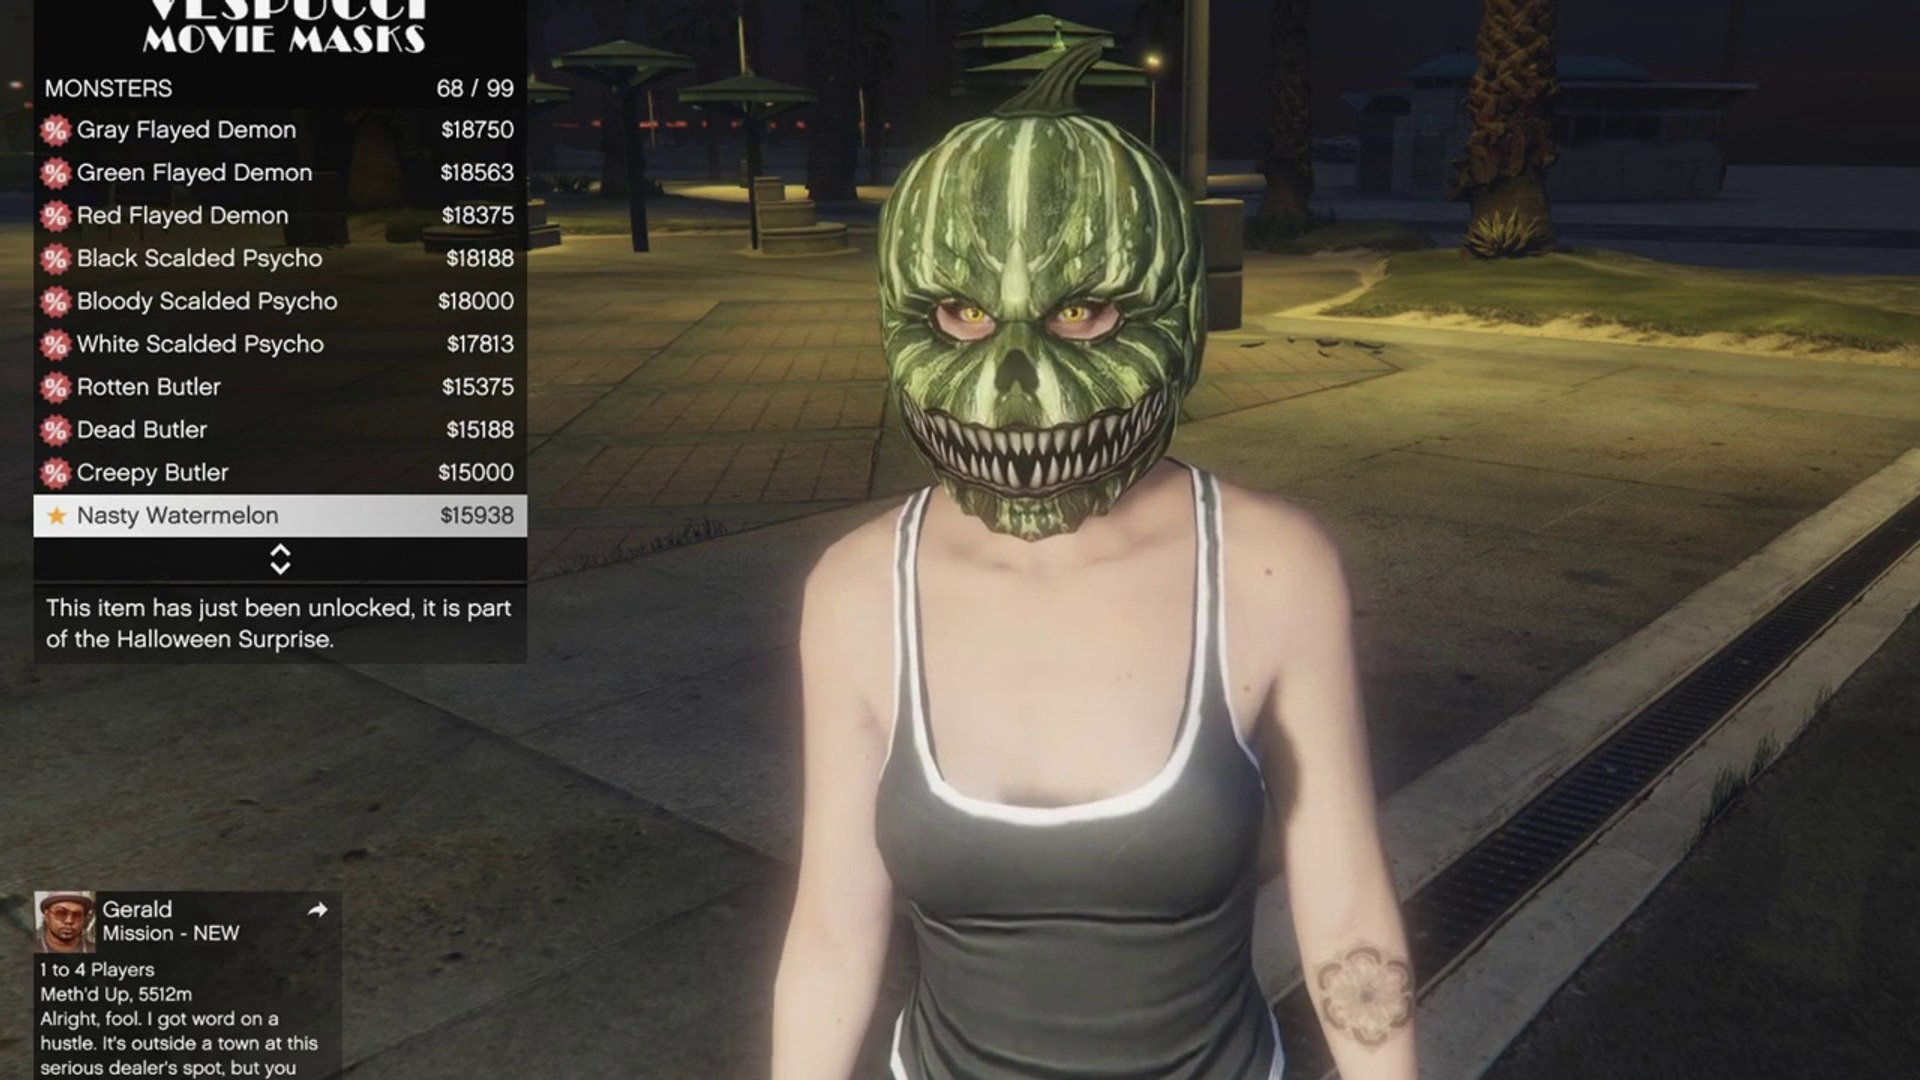 Gta 5 Online Christmas Masks.All Christmas Masks Gta 5